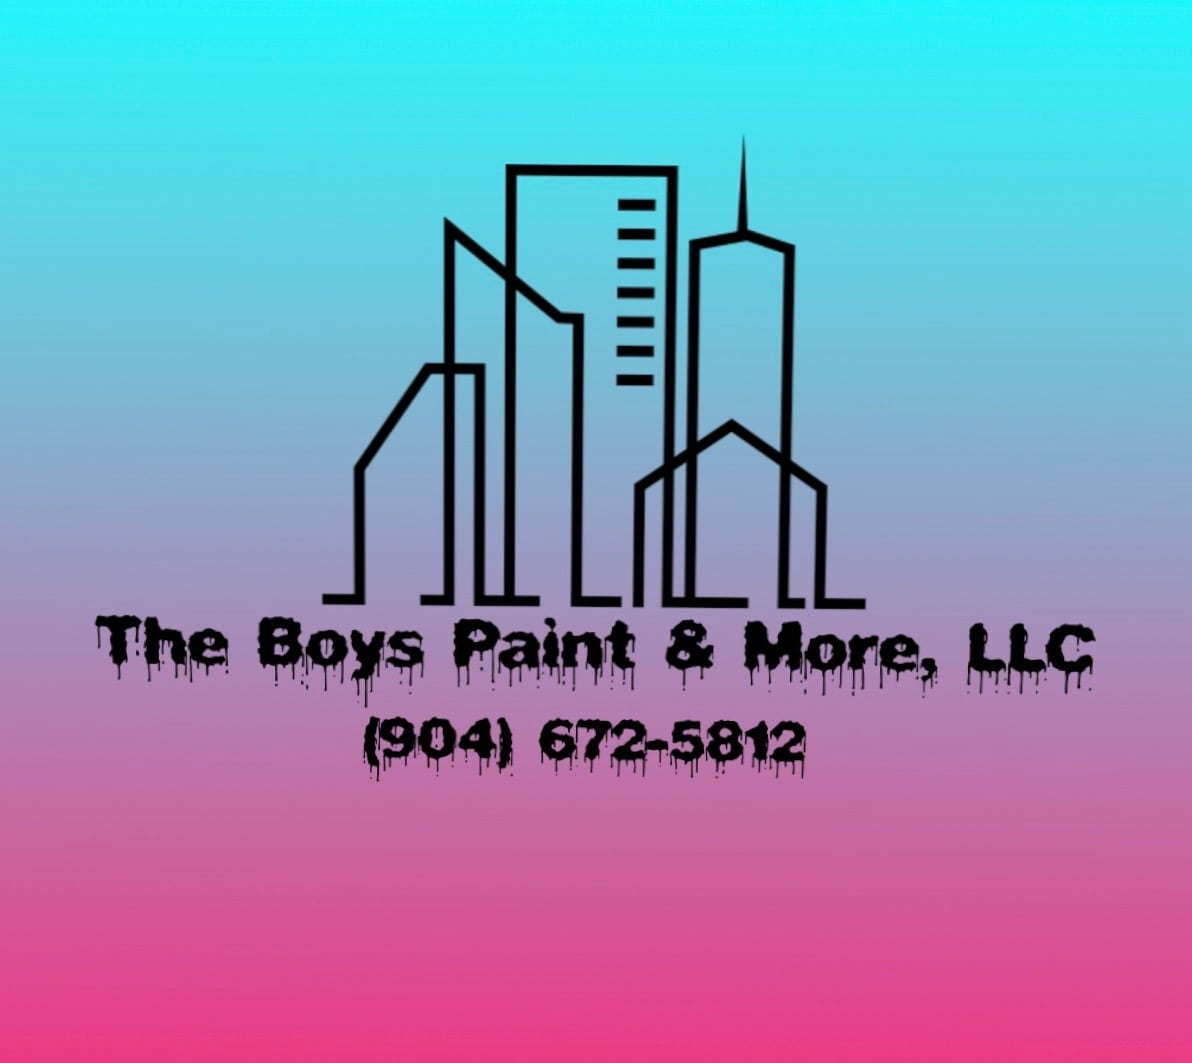 The Boys Paint and More, LLC